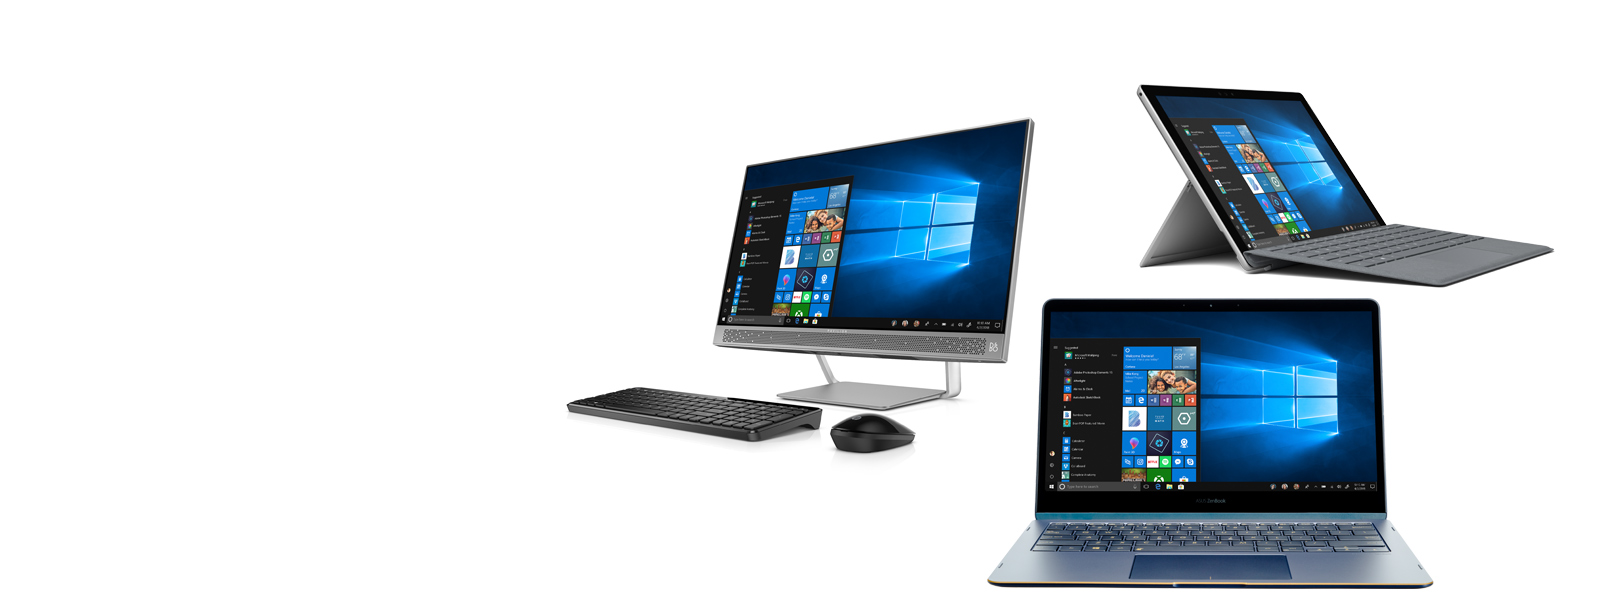 Group image of Windows 10 devices